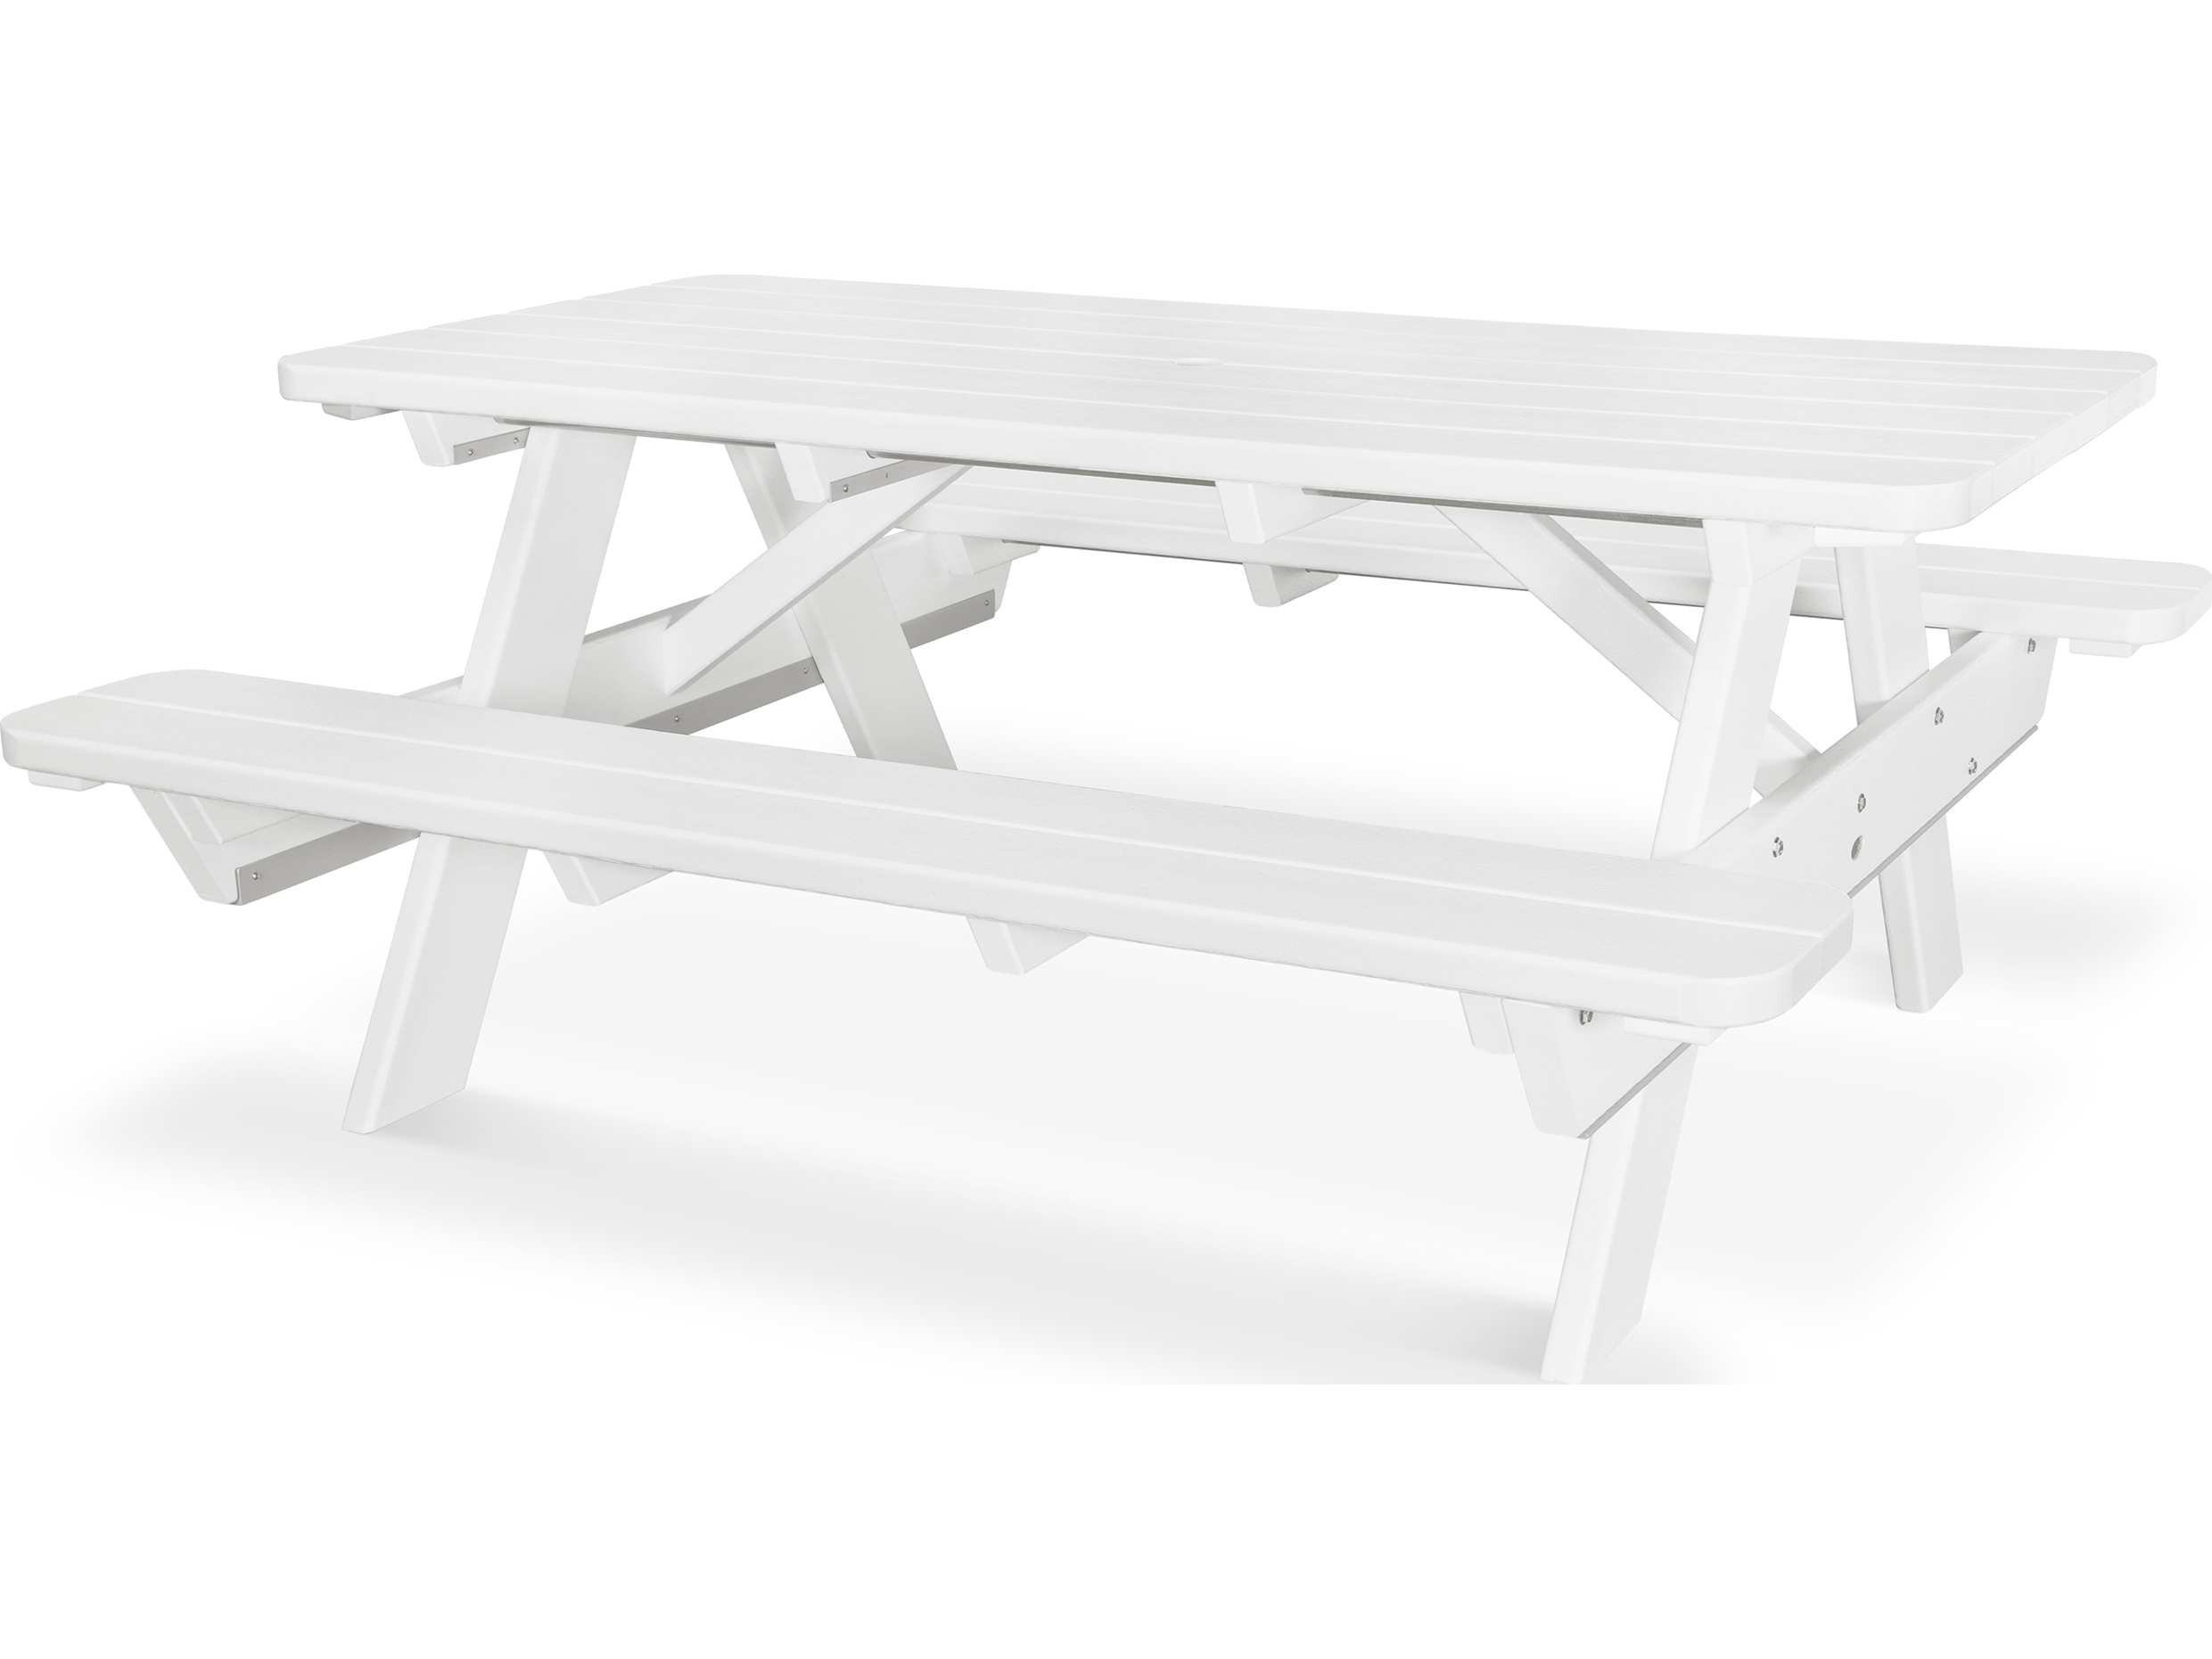 POLYWOOD Park Recycled Plastic Picnic Table PT - Polywood park picnic table